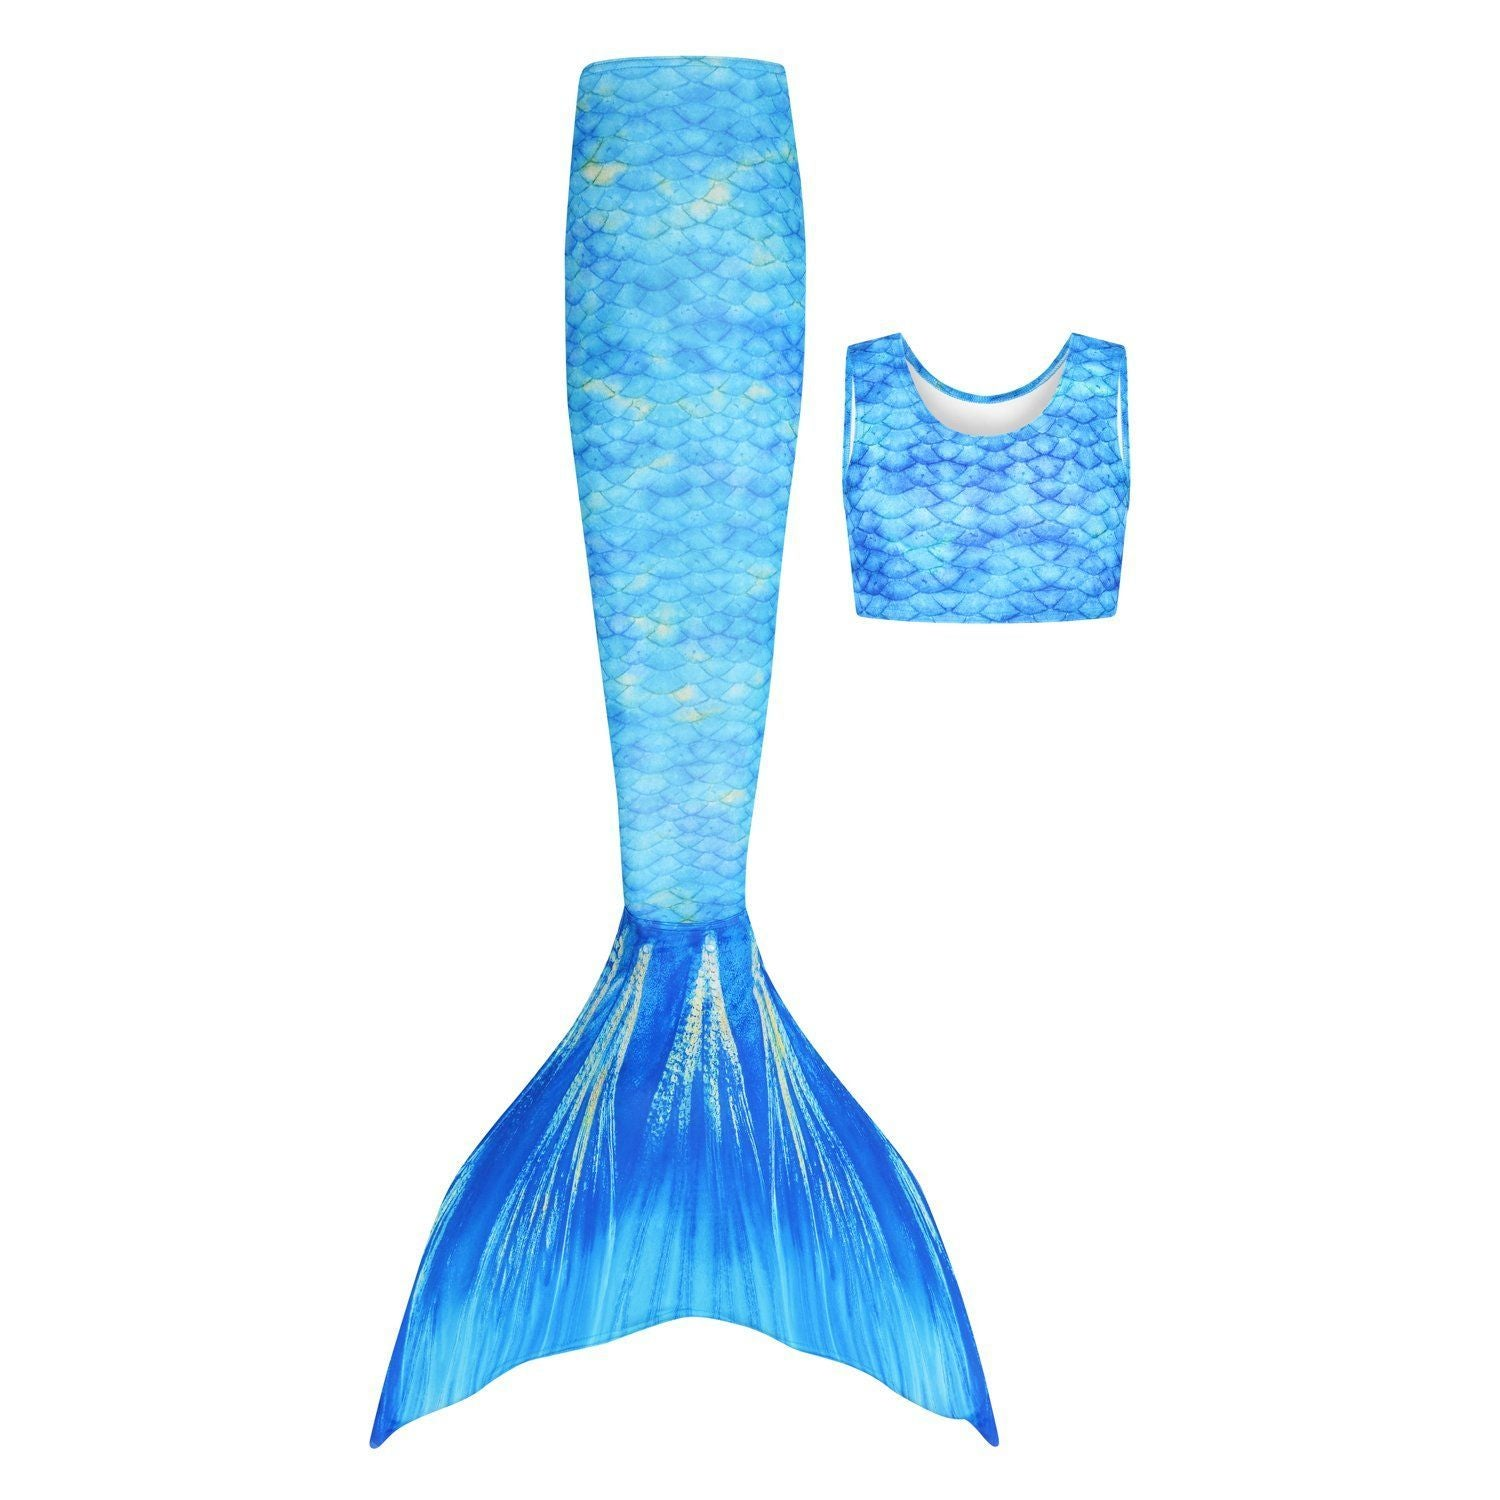 Gefrorenes Aqua Mermaid Tail Upgrade Kit